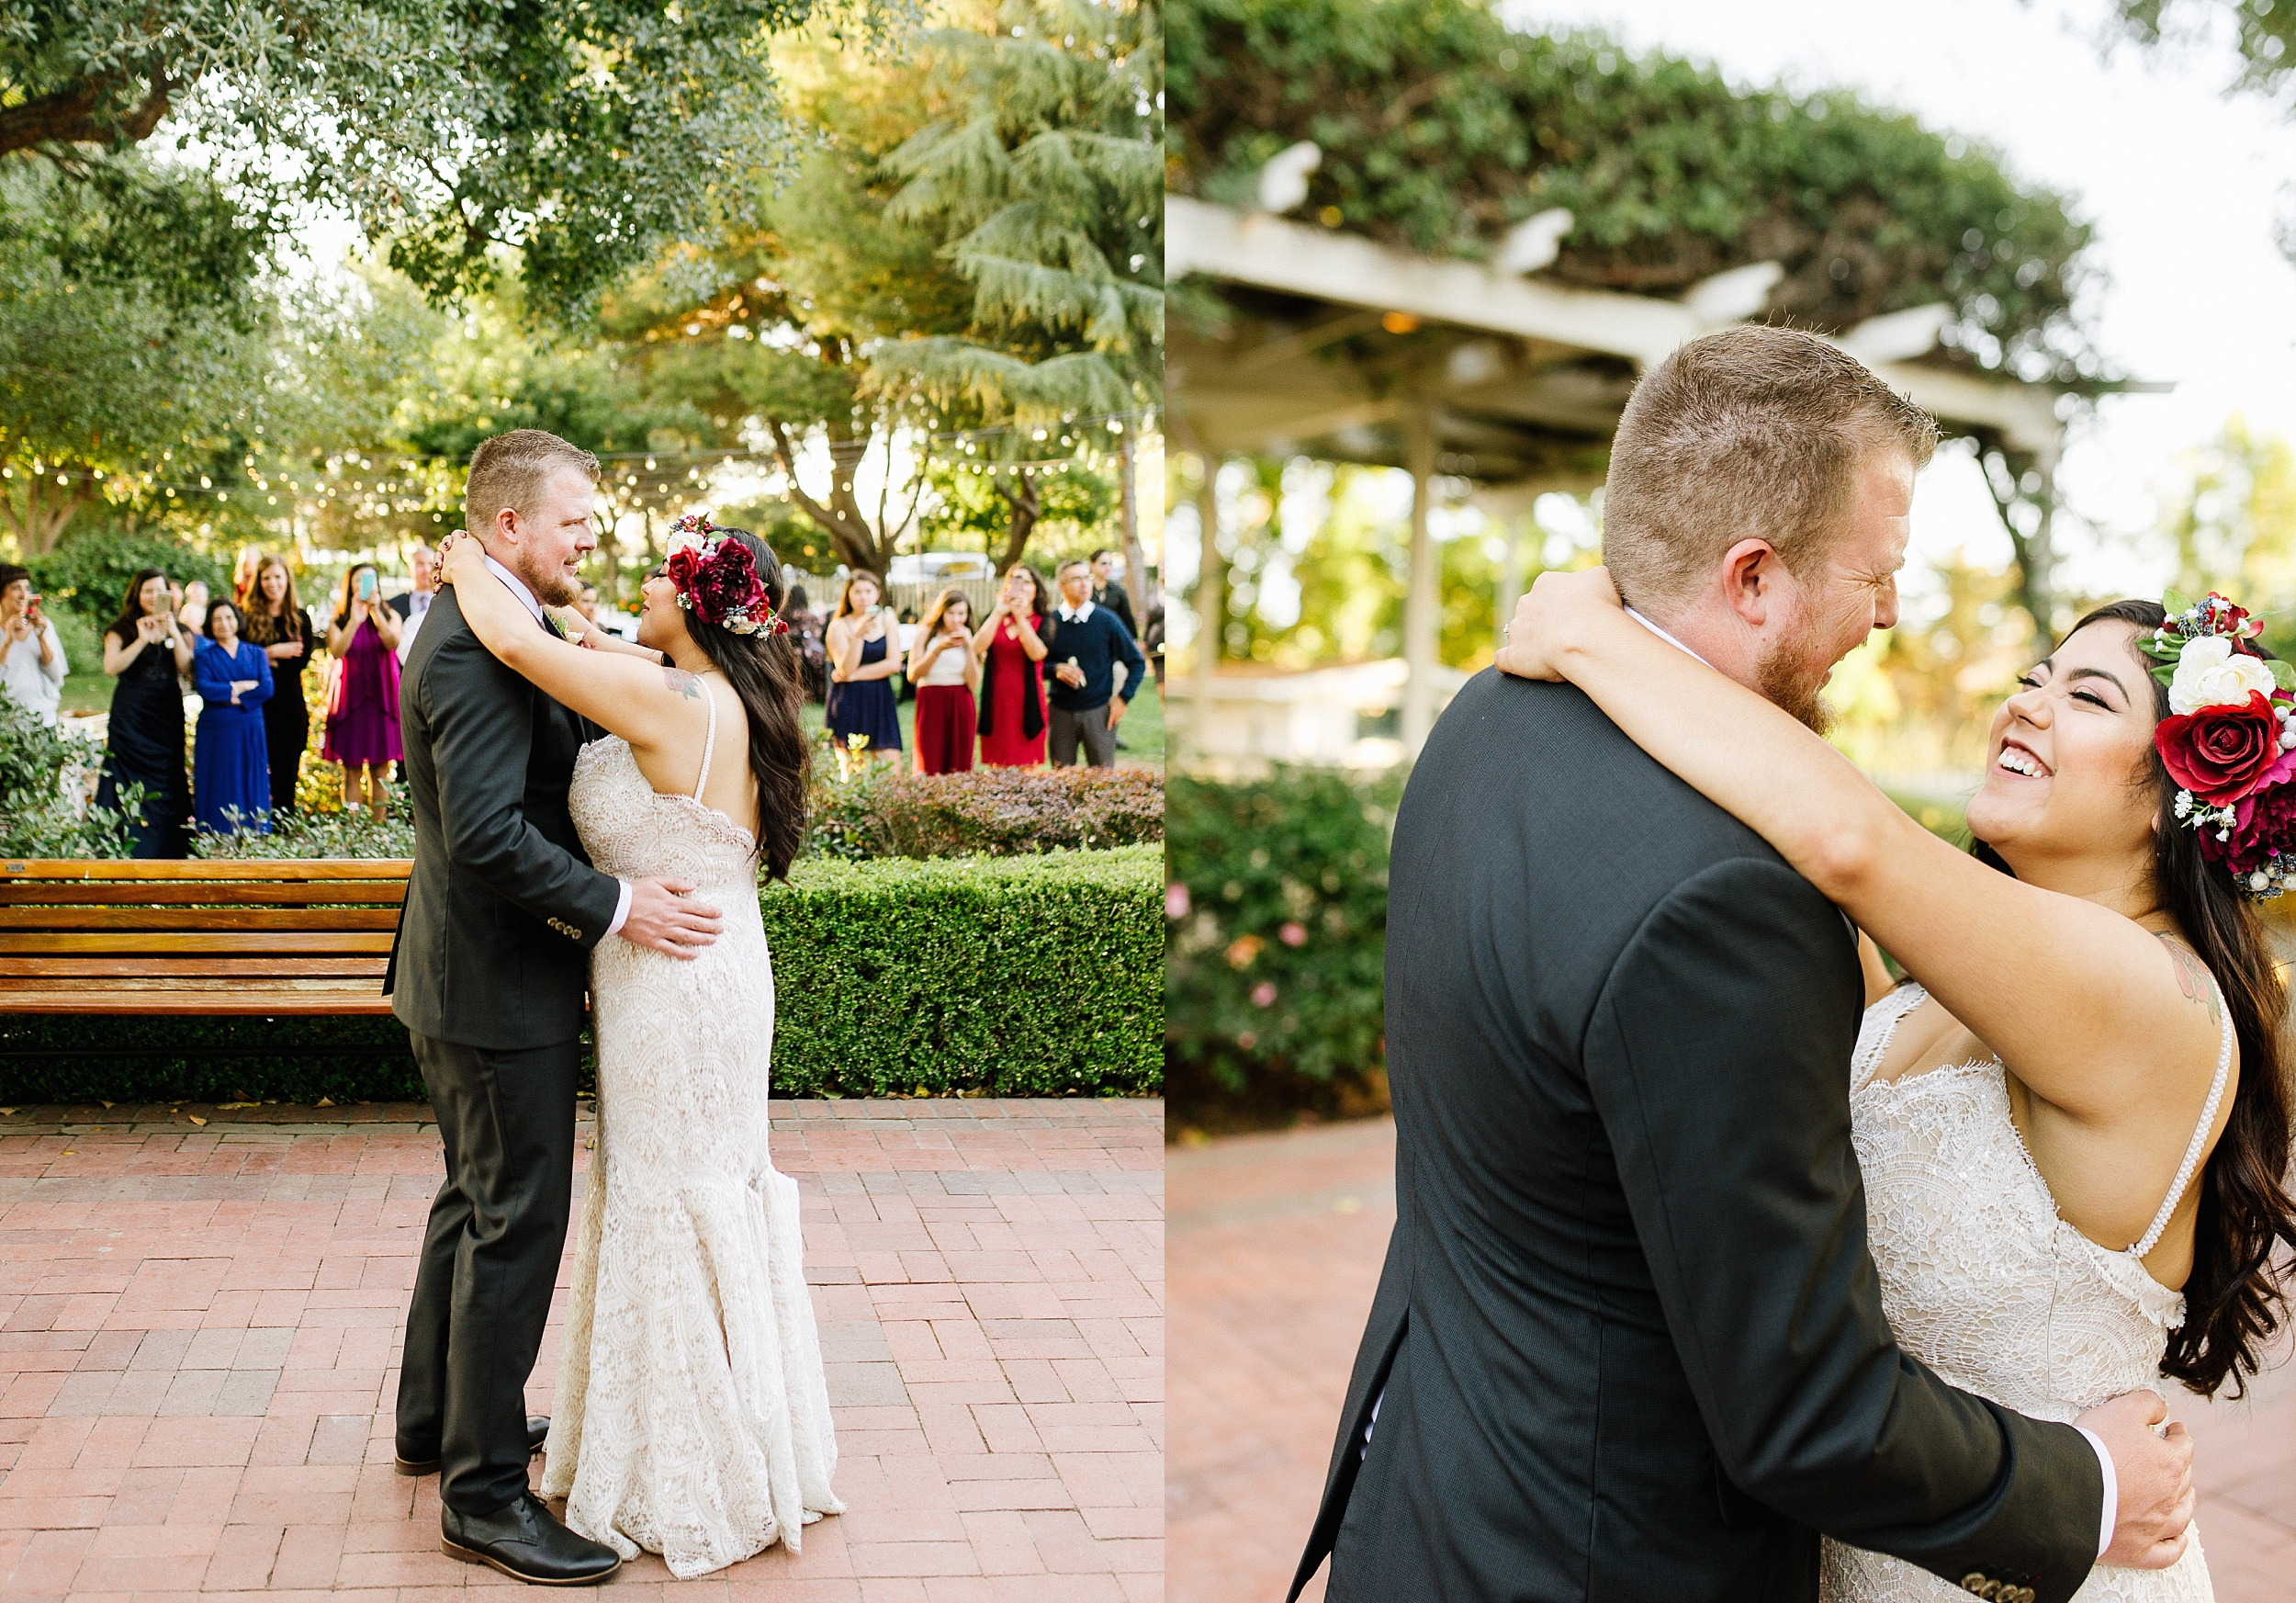 enissablake_Rengstorff_house_outdoor_wedding_cdp_0035.jpg